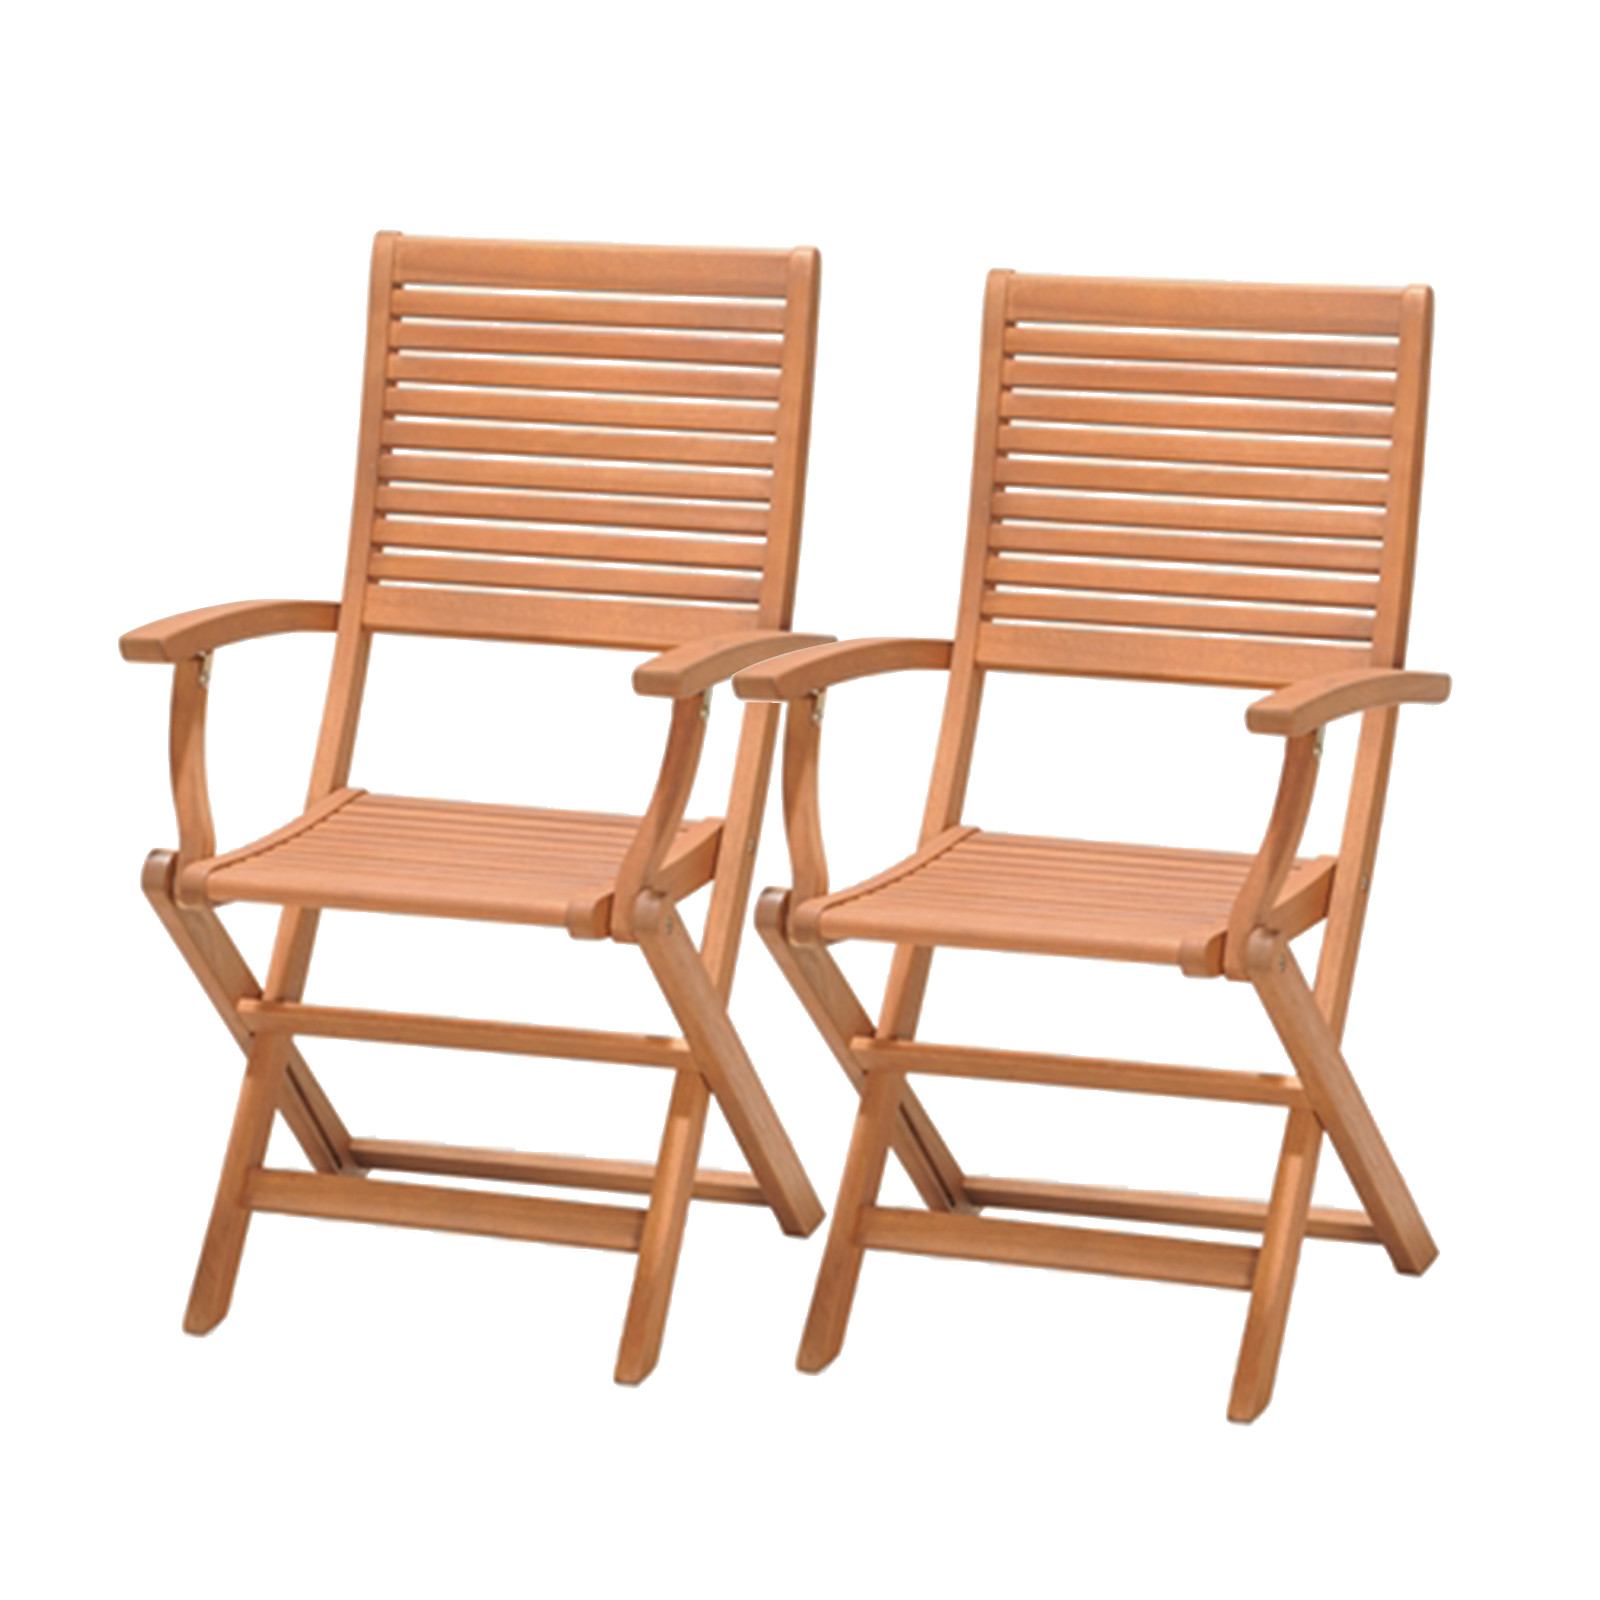 Kingsbury-2 Folding Chairs With Arms Handwork Eucalyptus Wooden 57.70 Cm X 54 Cm.00 X 93.65-4999100100297L